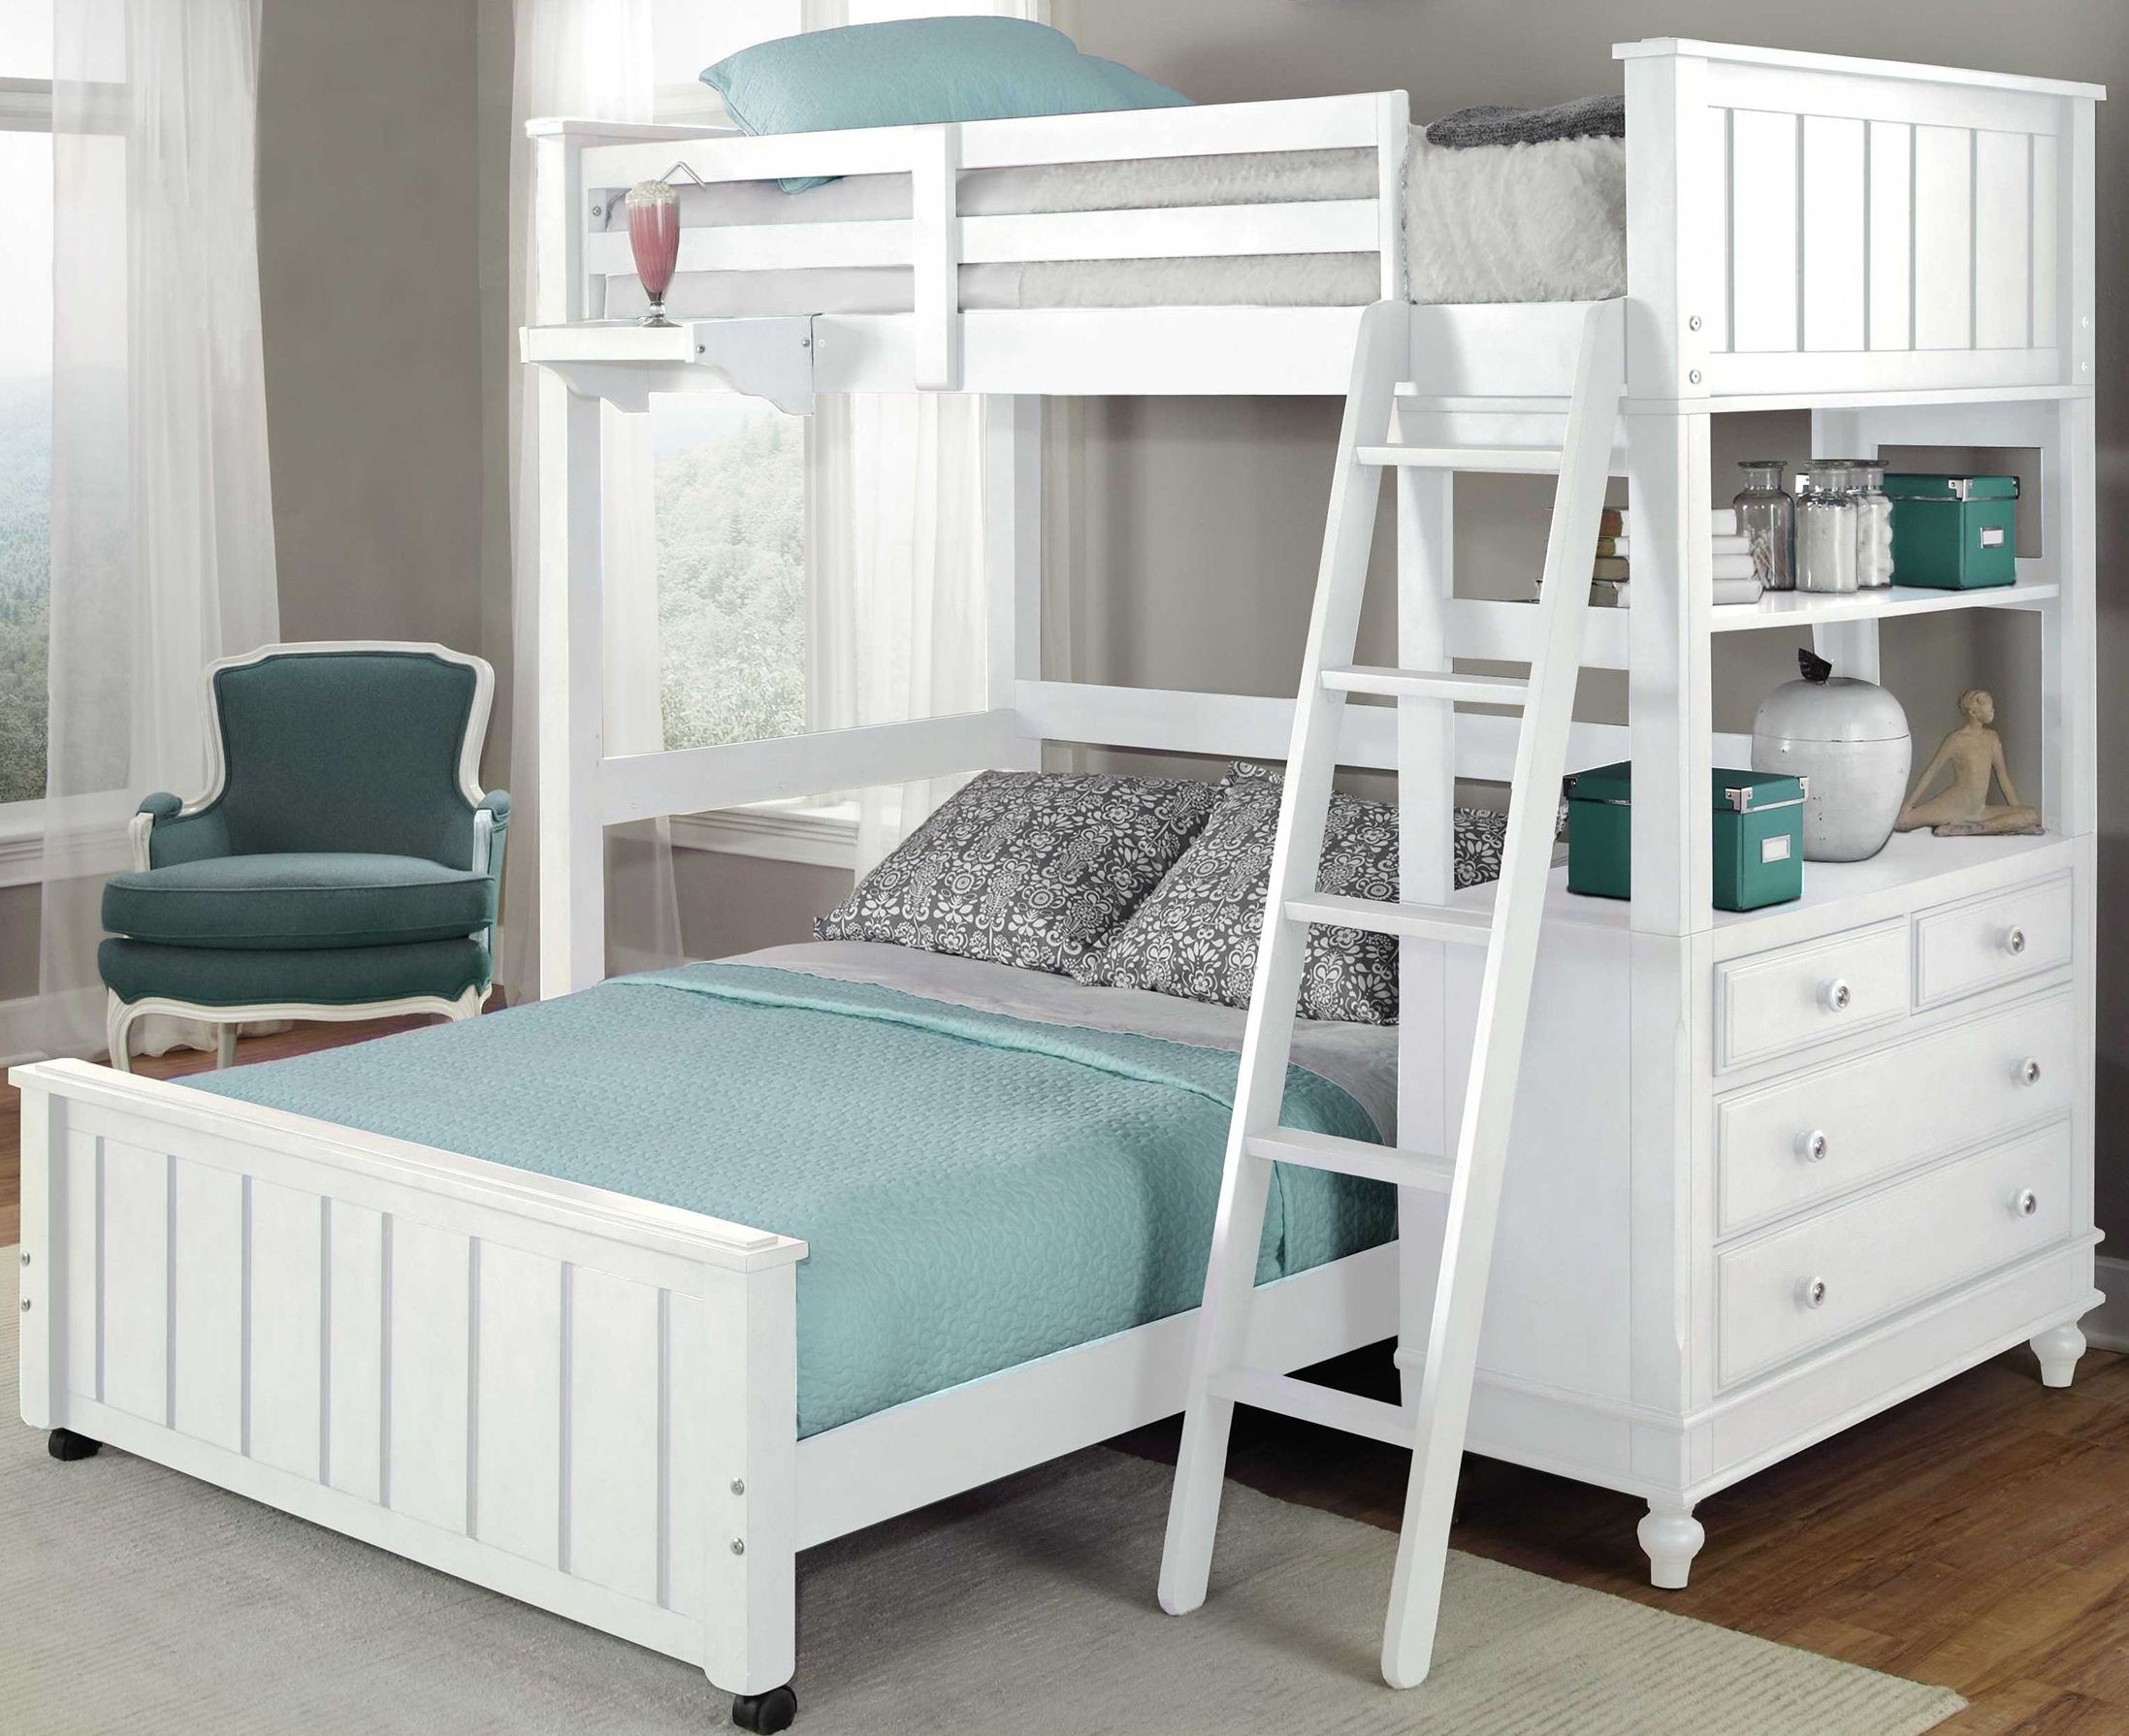 Lake House White Twin Loft Bed with Full Lower Bed from NE Kids  Coleman Furniture